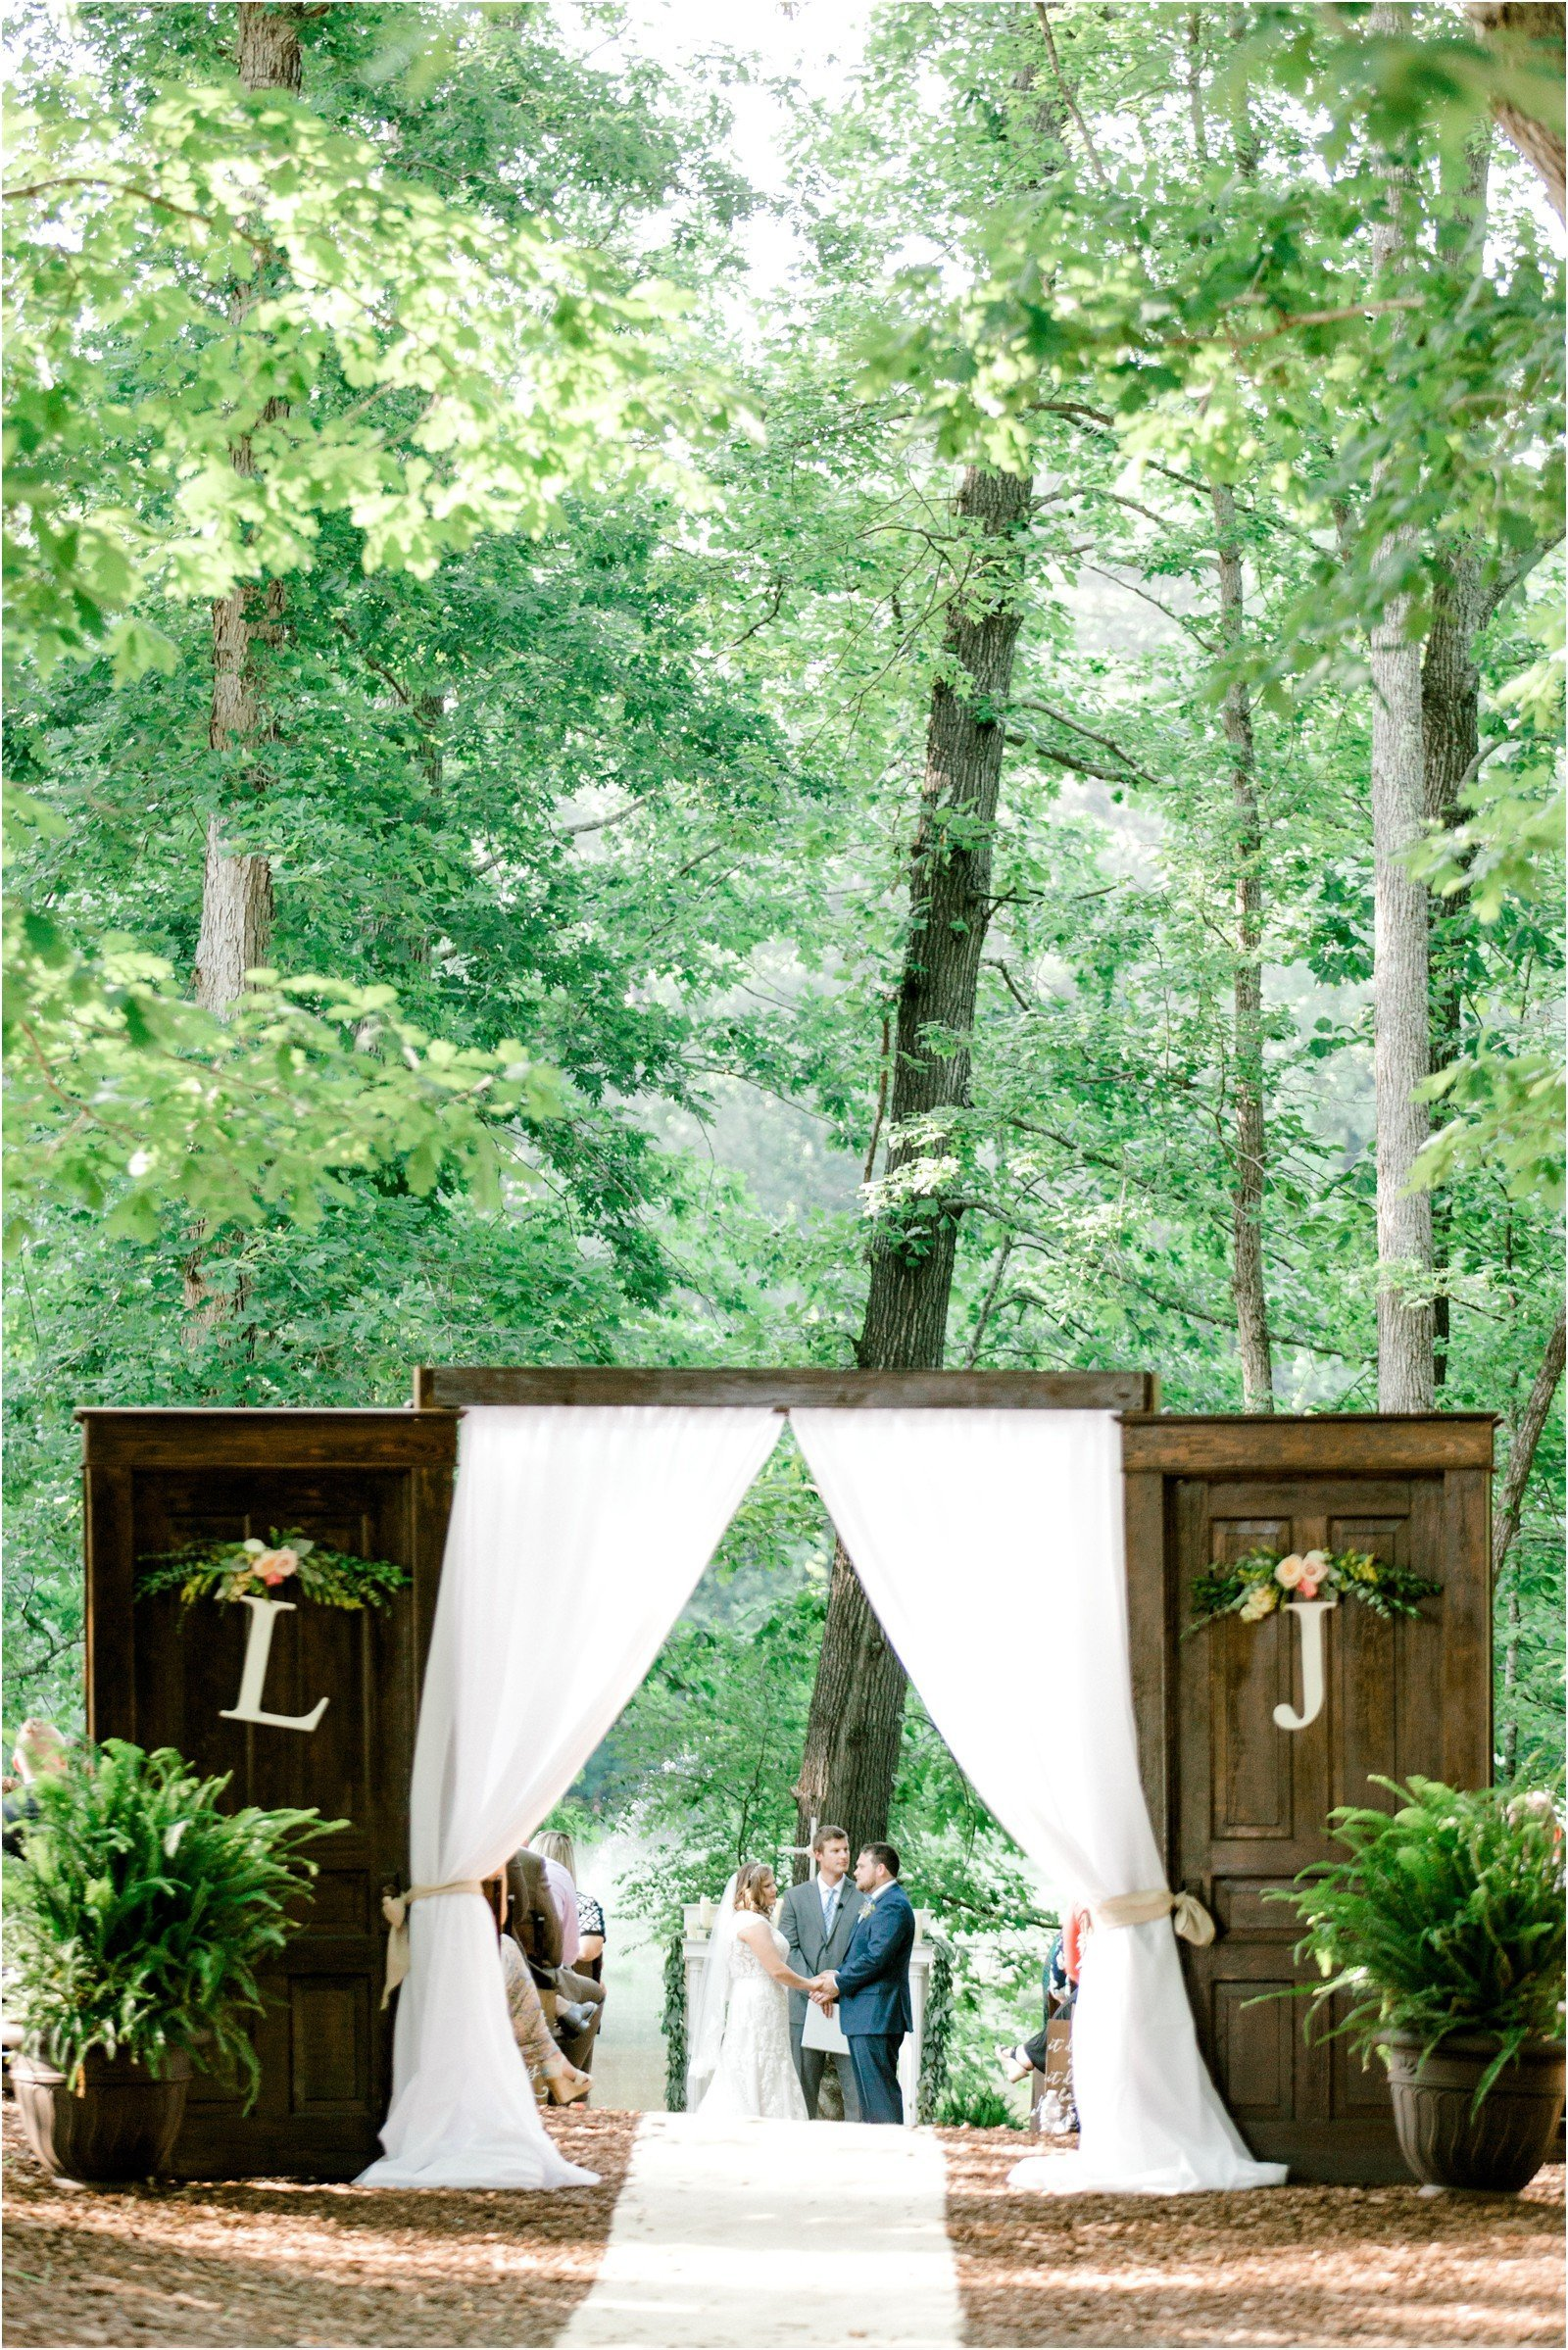 Chapel in the Woods Rustic Country Vintage Wedding Raleigh NC Plume Events Andrew & Tianna Photography-19